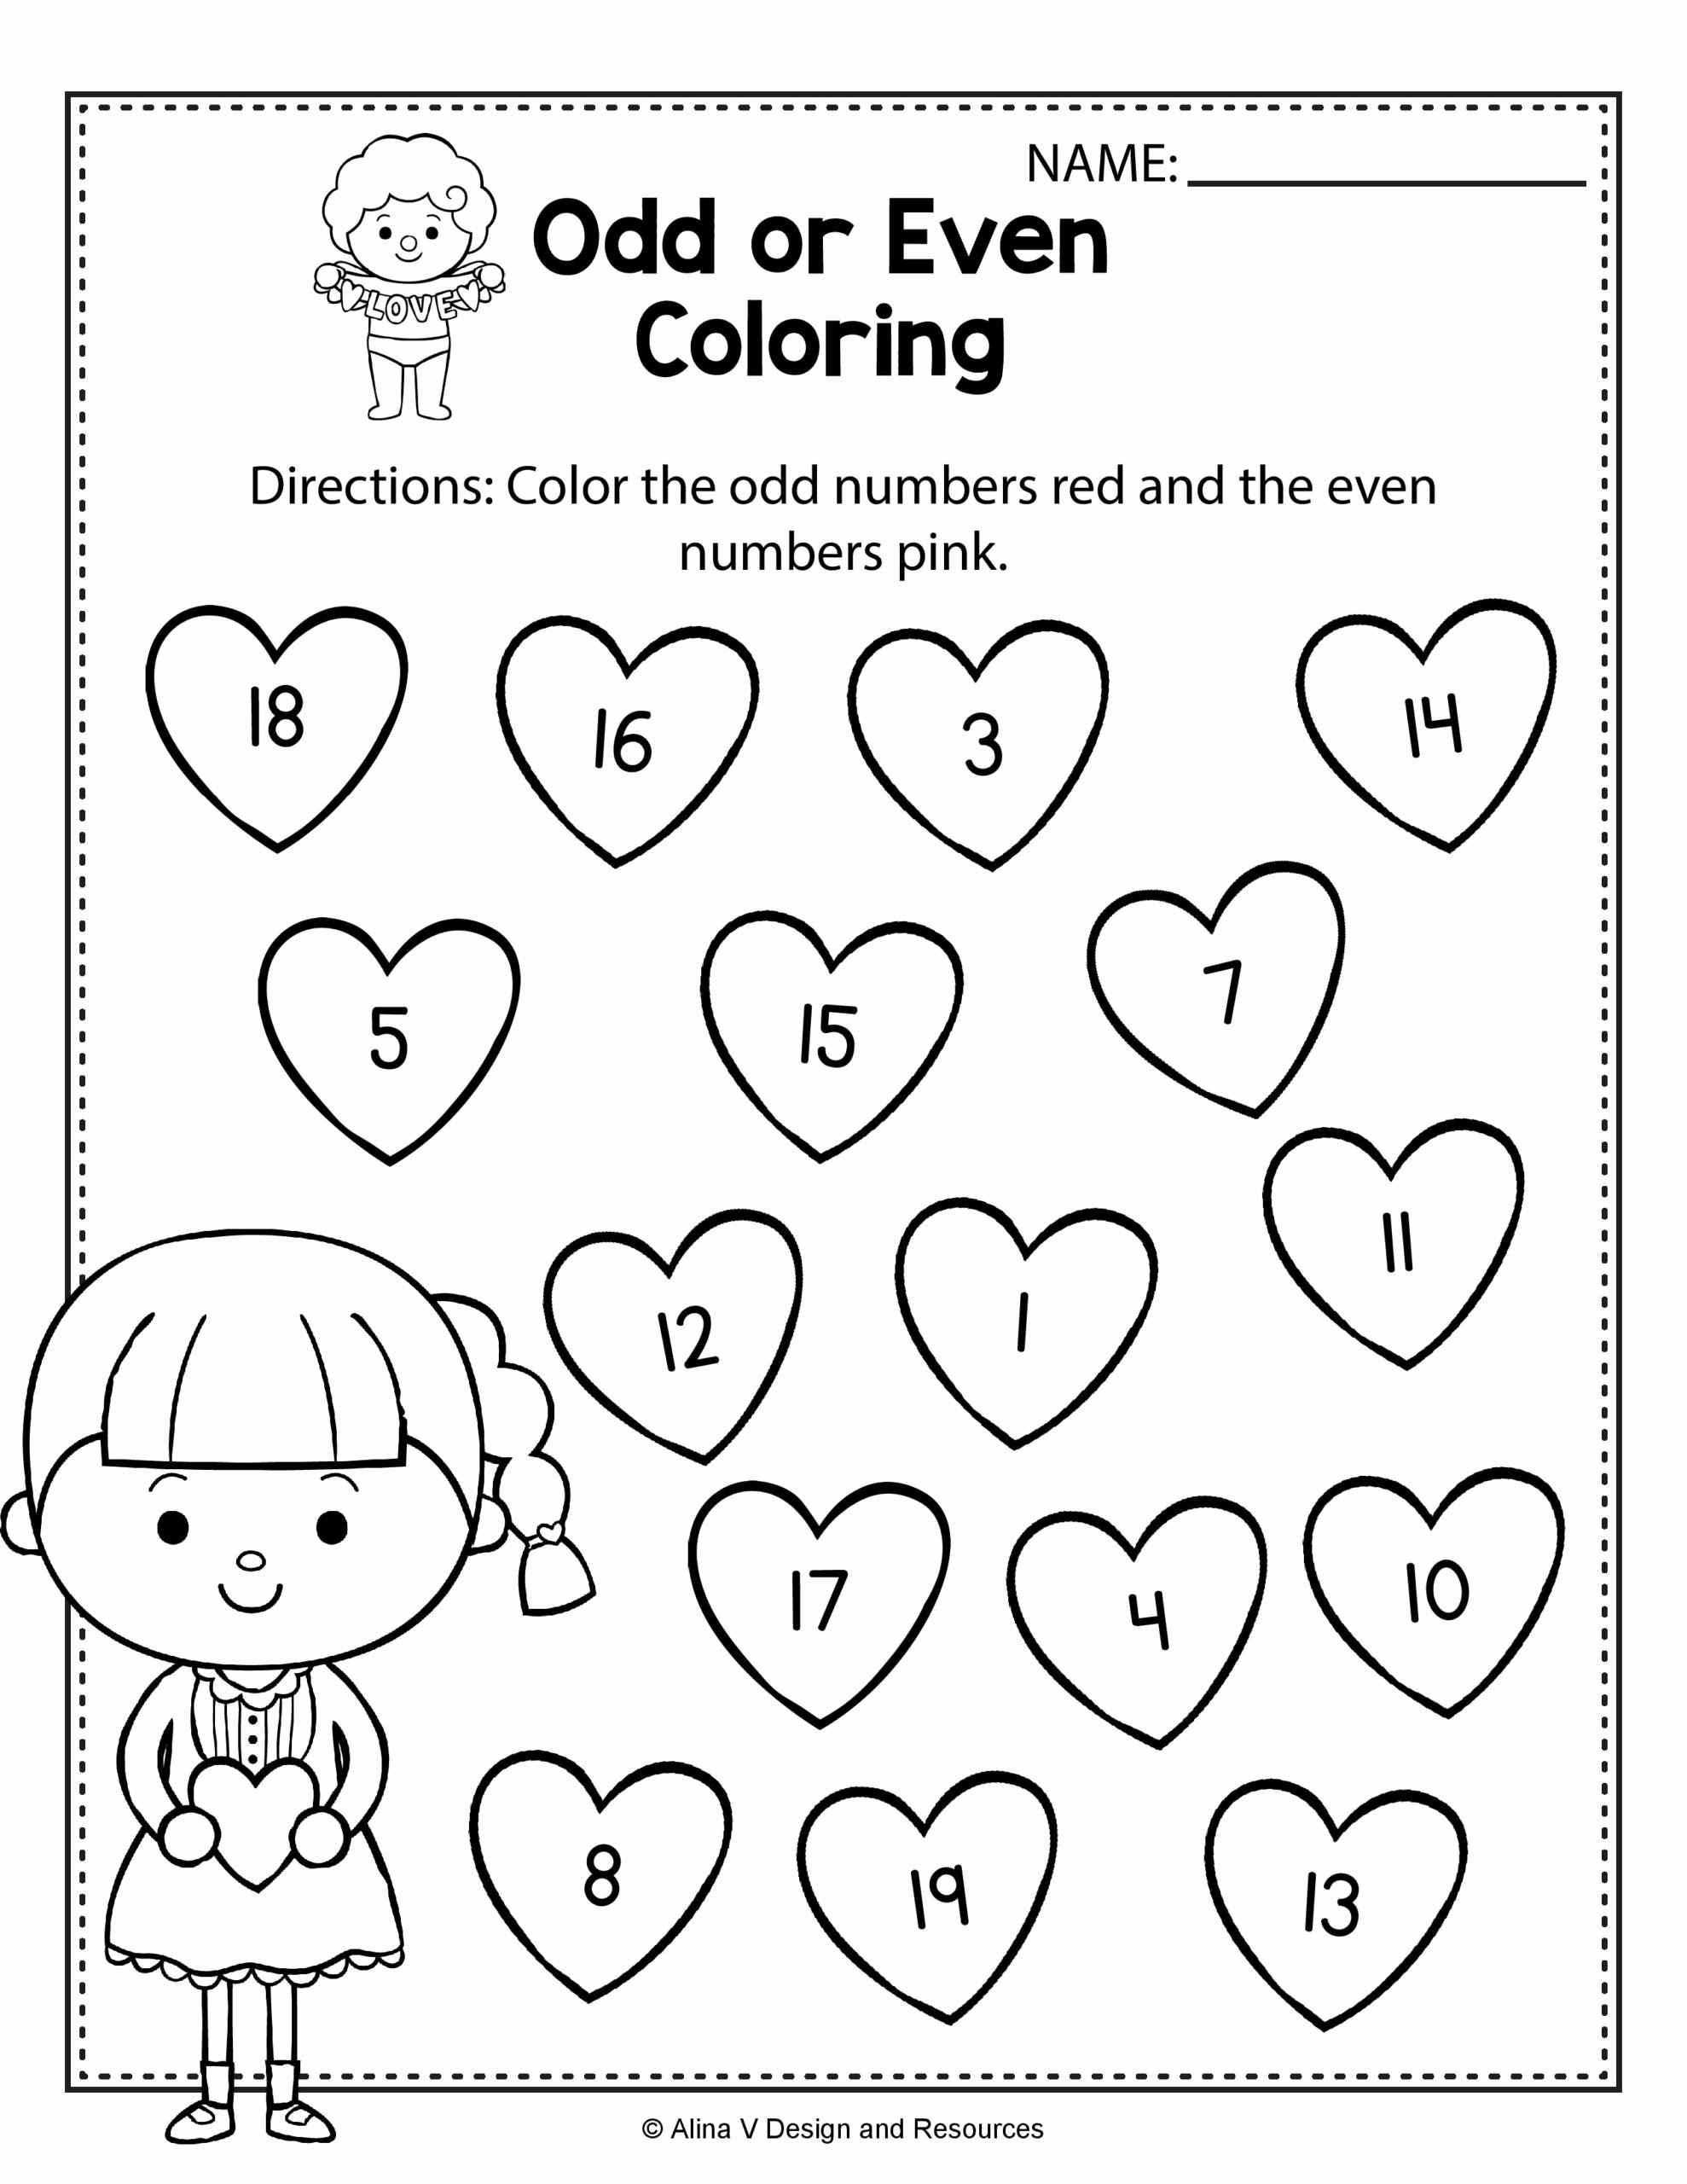 March Worksheets for Preschoolers Fresh March Preschool Worksheets Spring Summer Numbers to Trace